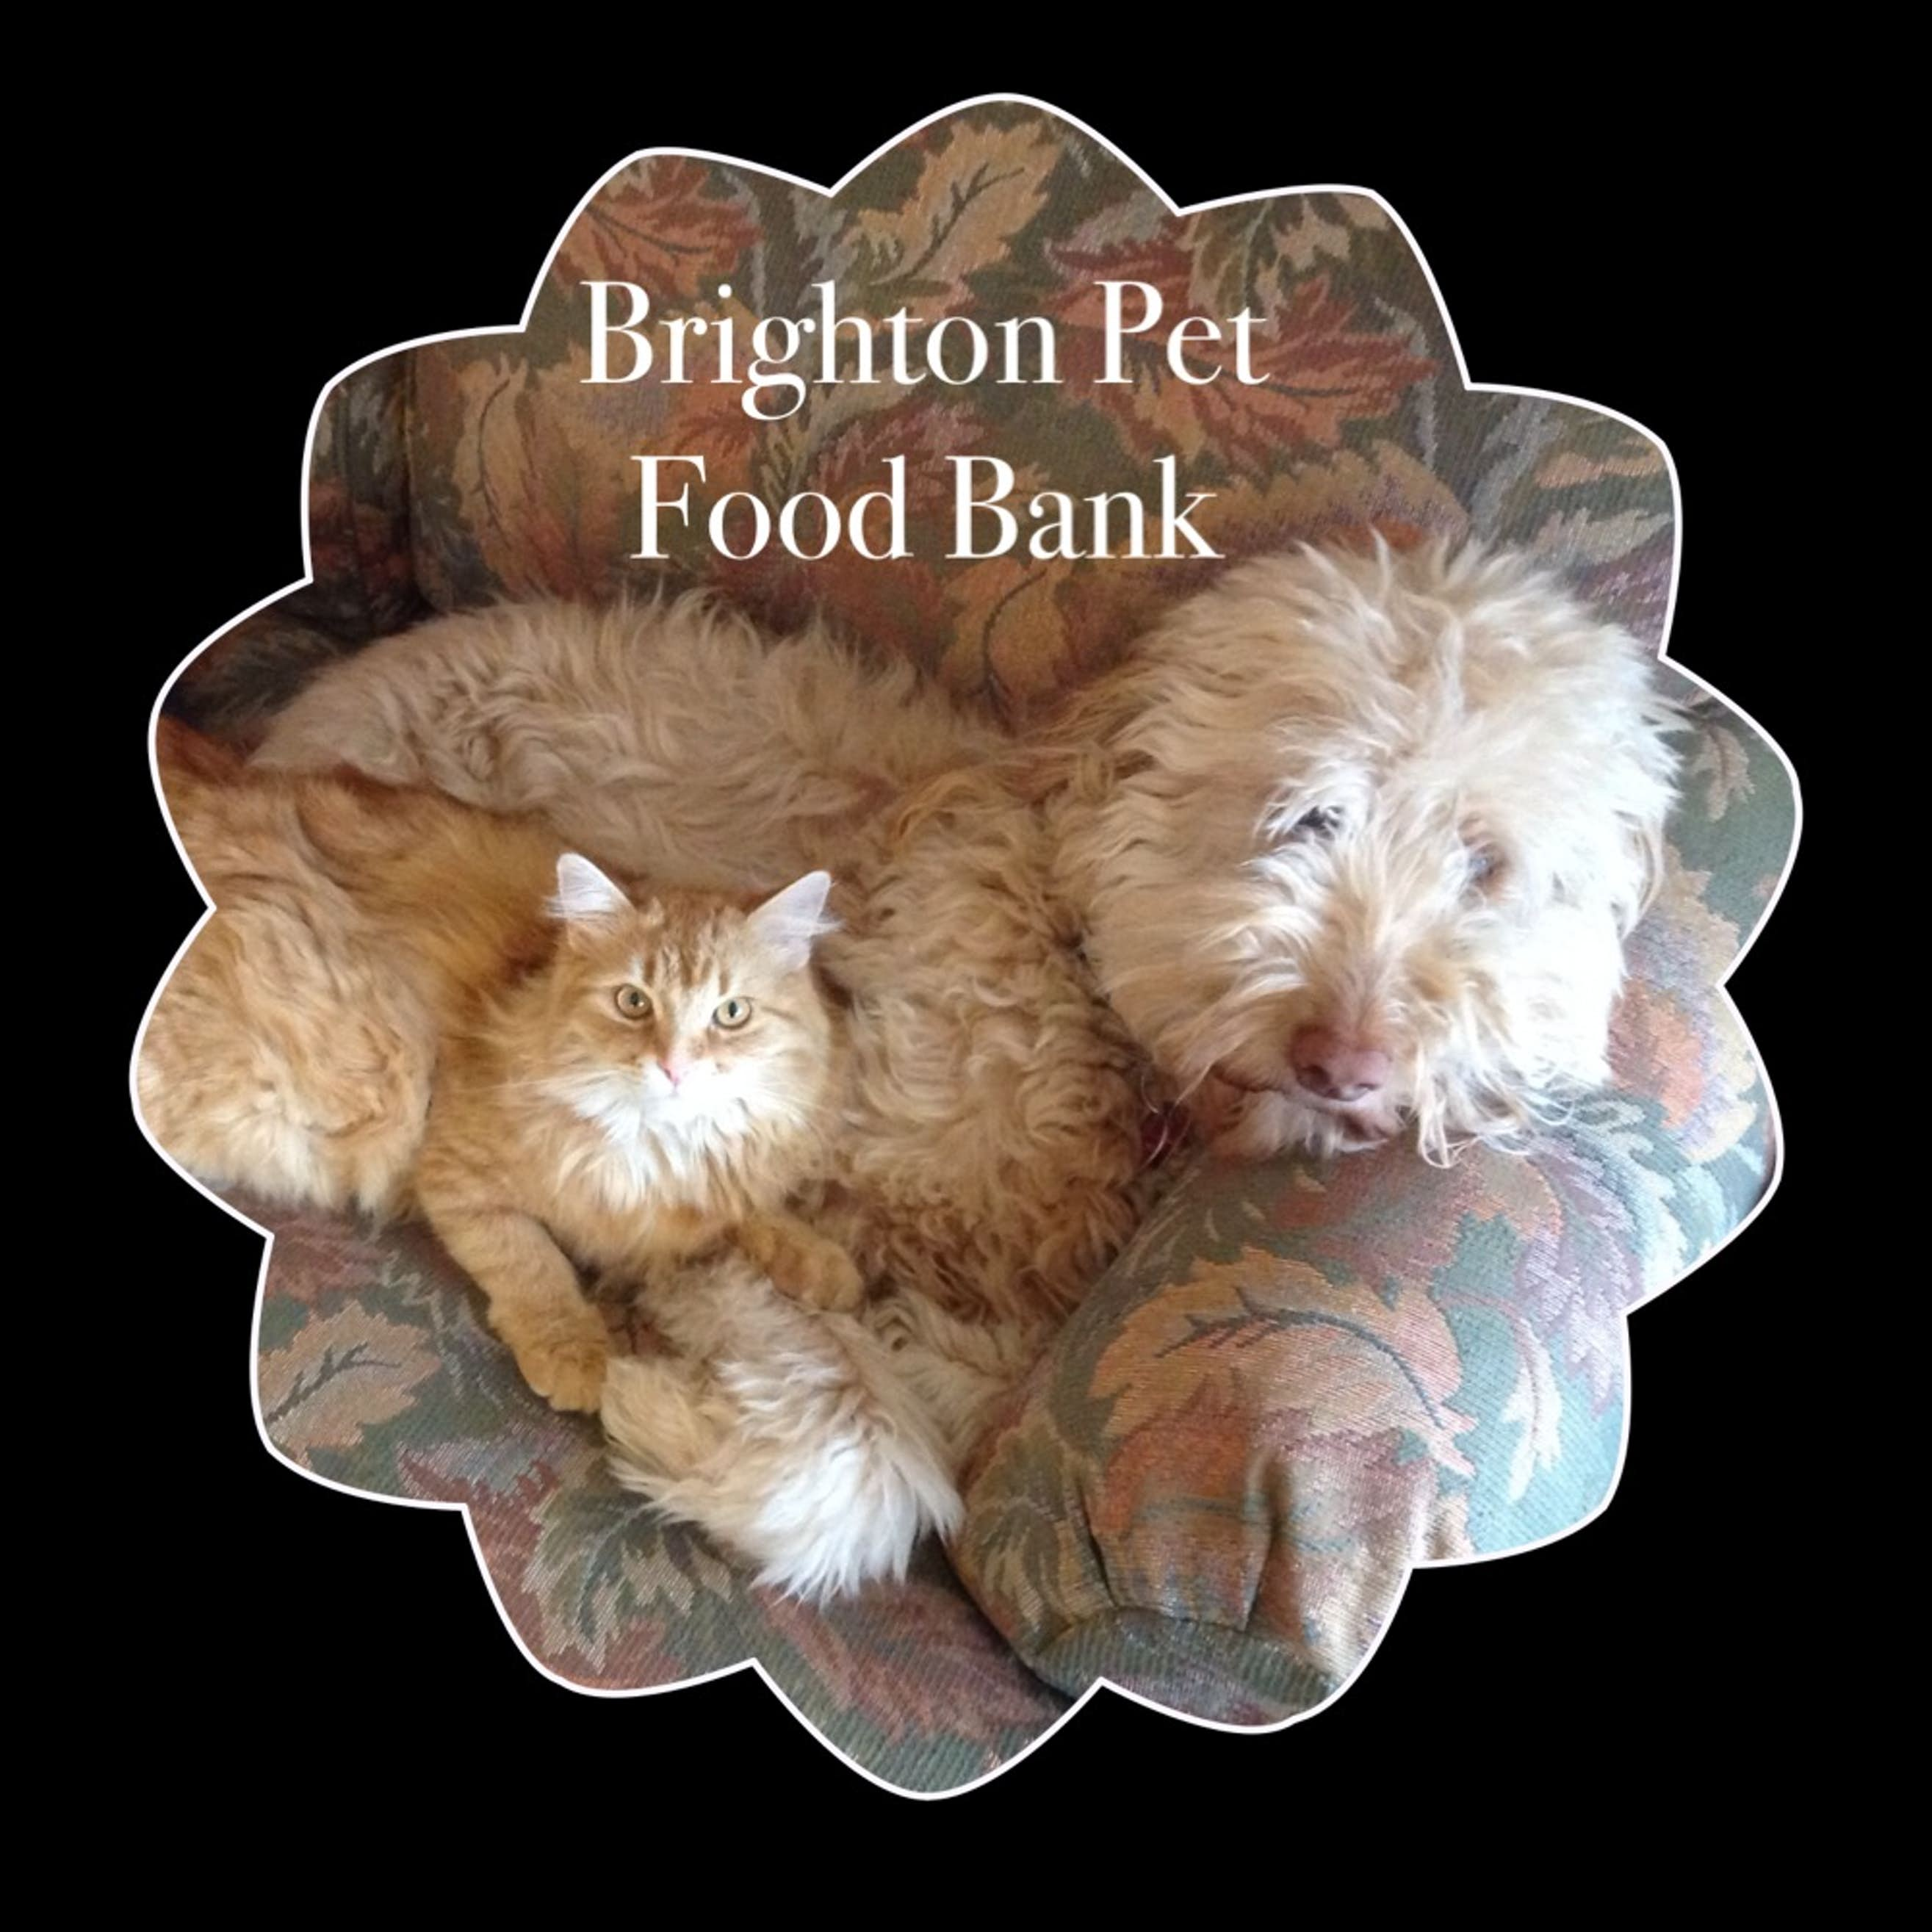 Brighton Pet Food Bank